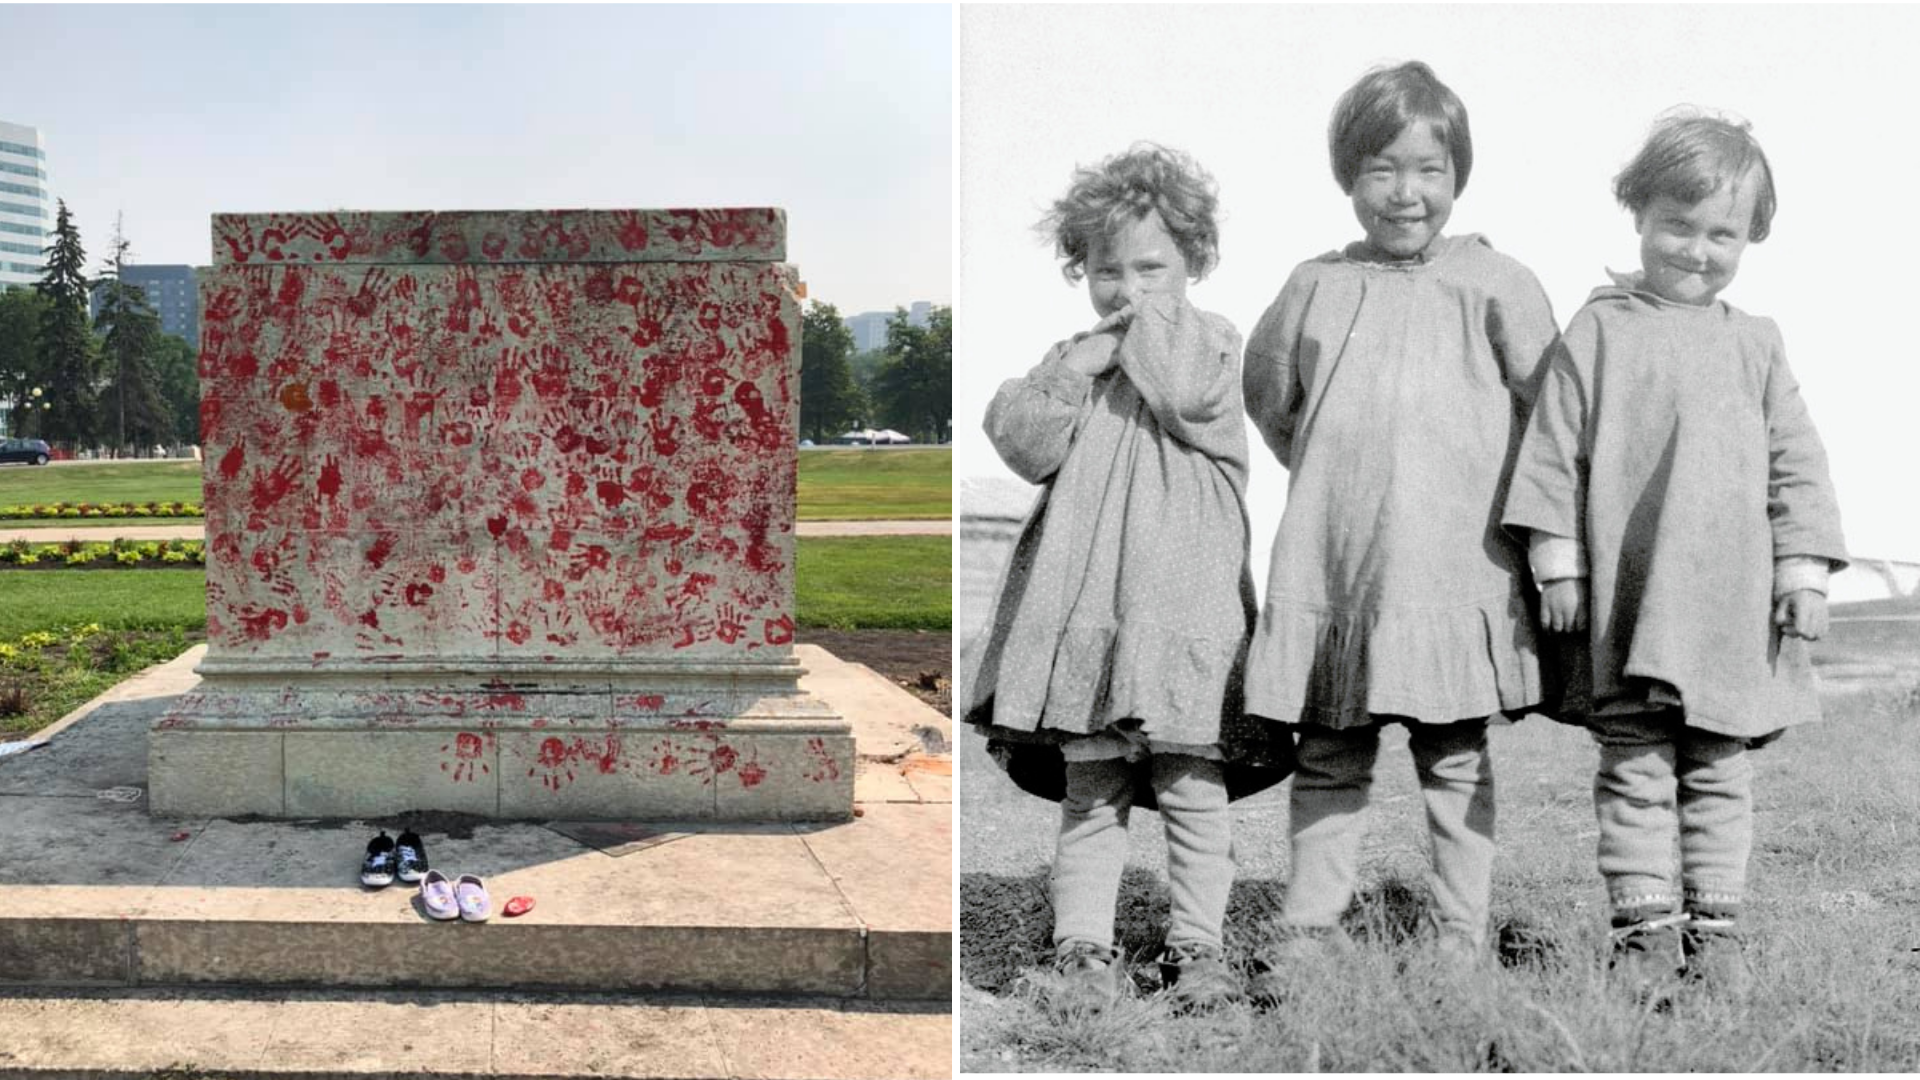 two photos, one of a cement memorial covered in red handprints and one black and white photo of three children